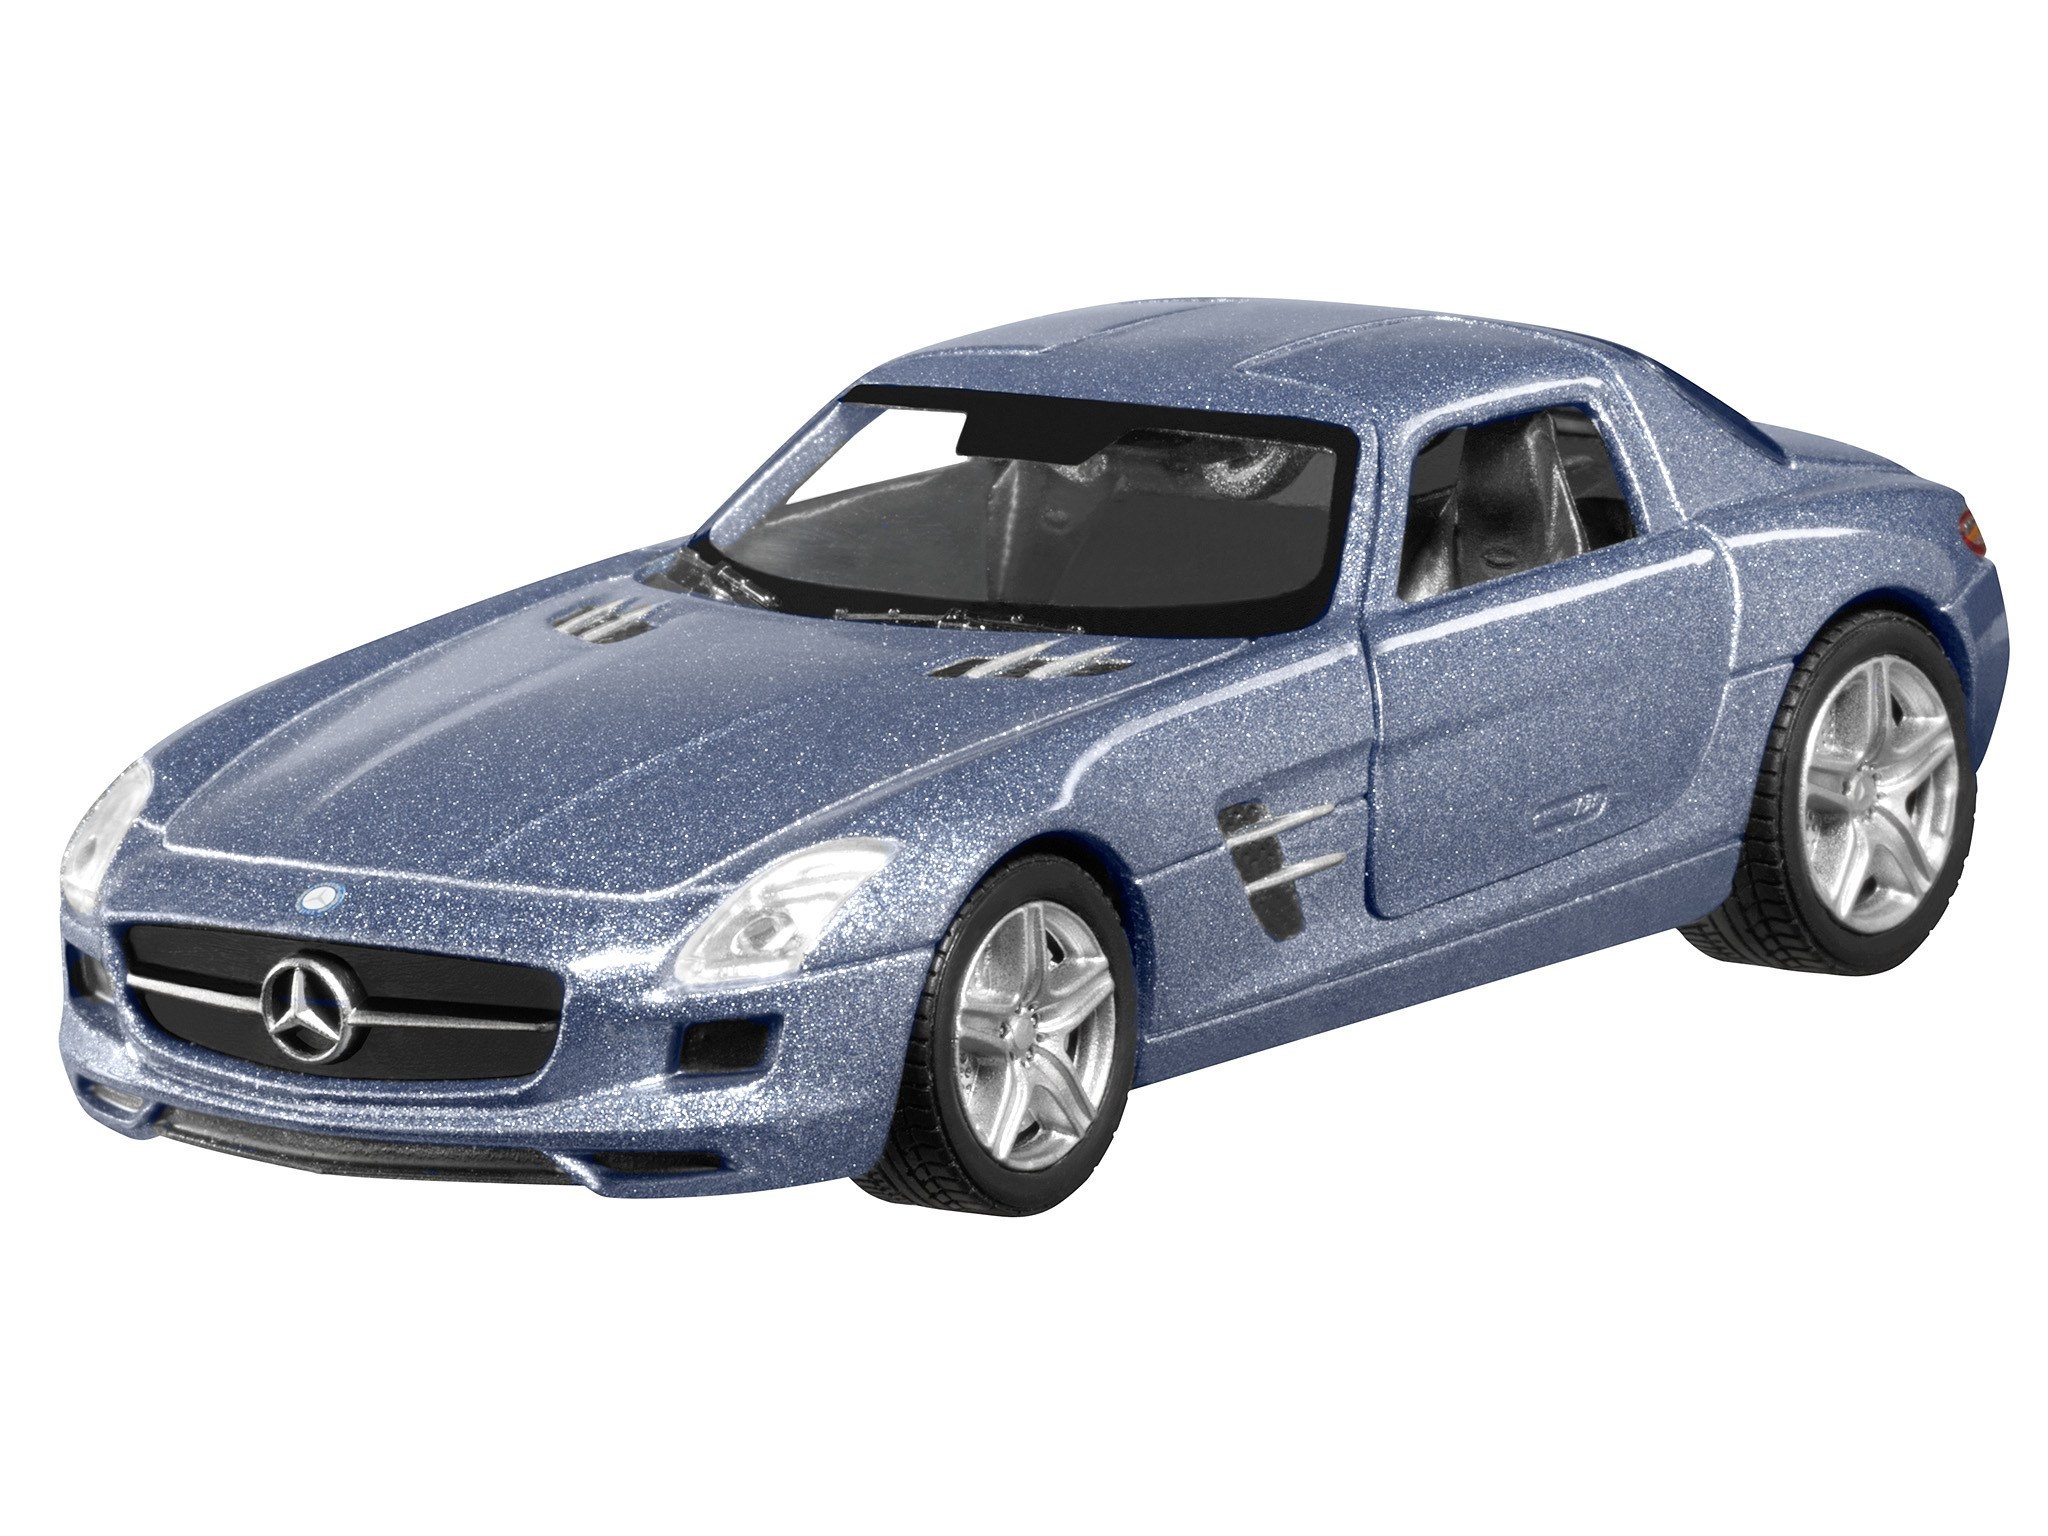 Mb parts world genuine mercedes benz parts autos post for Official mercedes benz parts